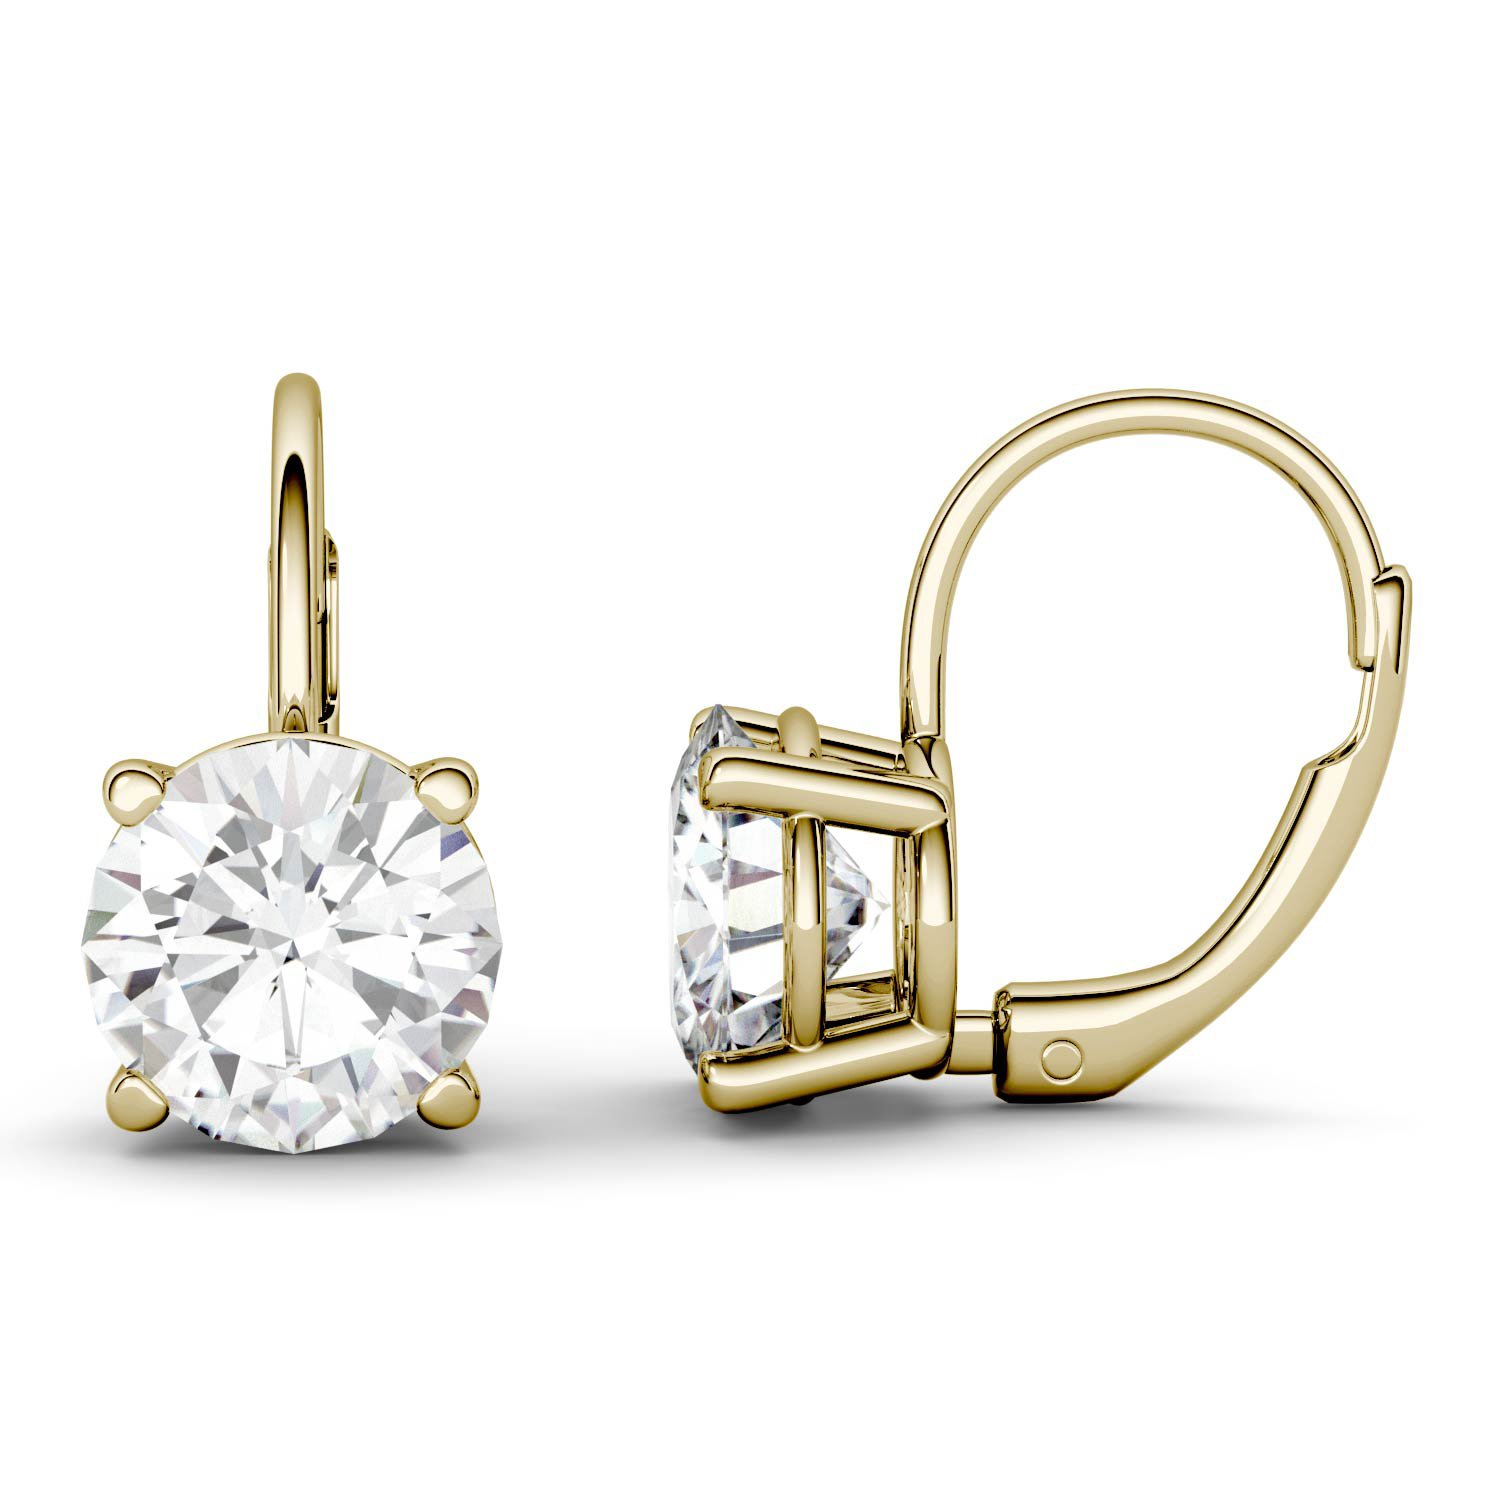 Forever One 7.5mm Round Moissanite Drop Earrings, 3.00cttw DEW (G-H-I) By Charles & Colvard